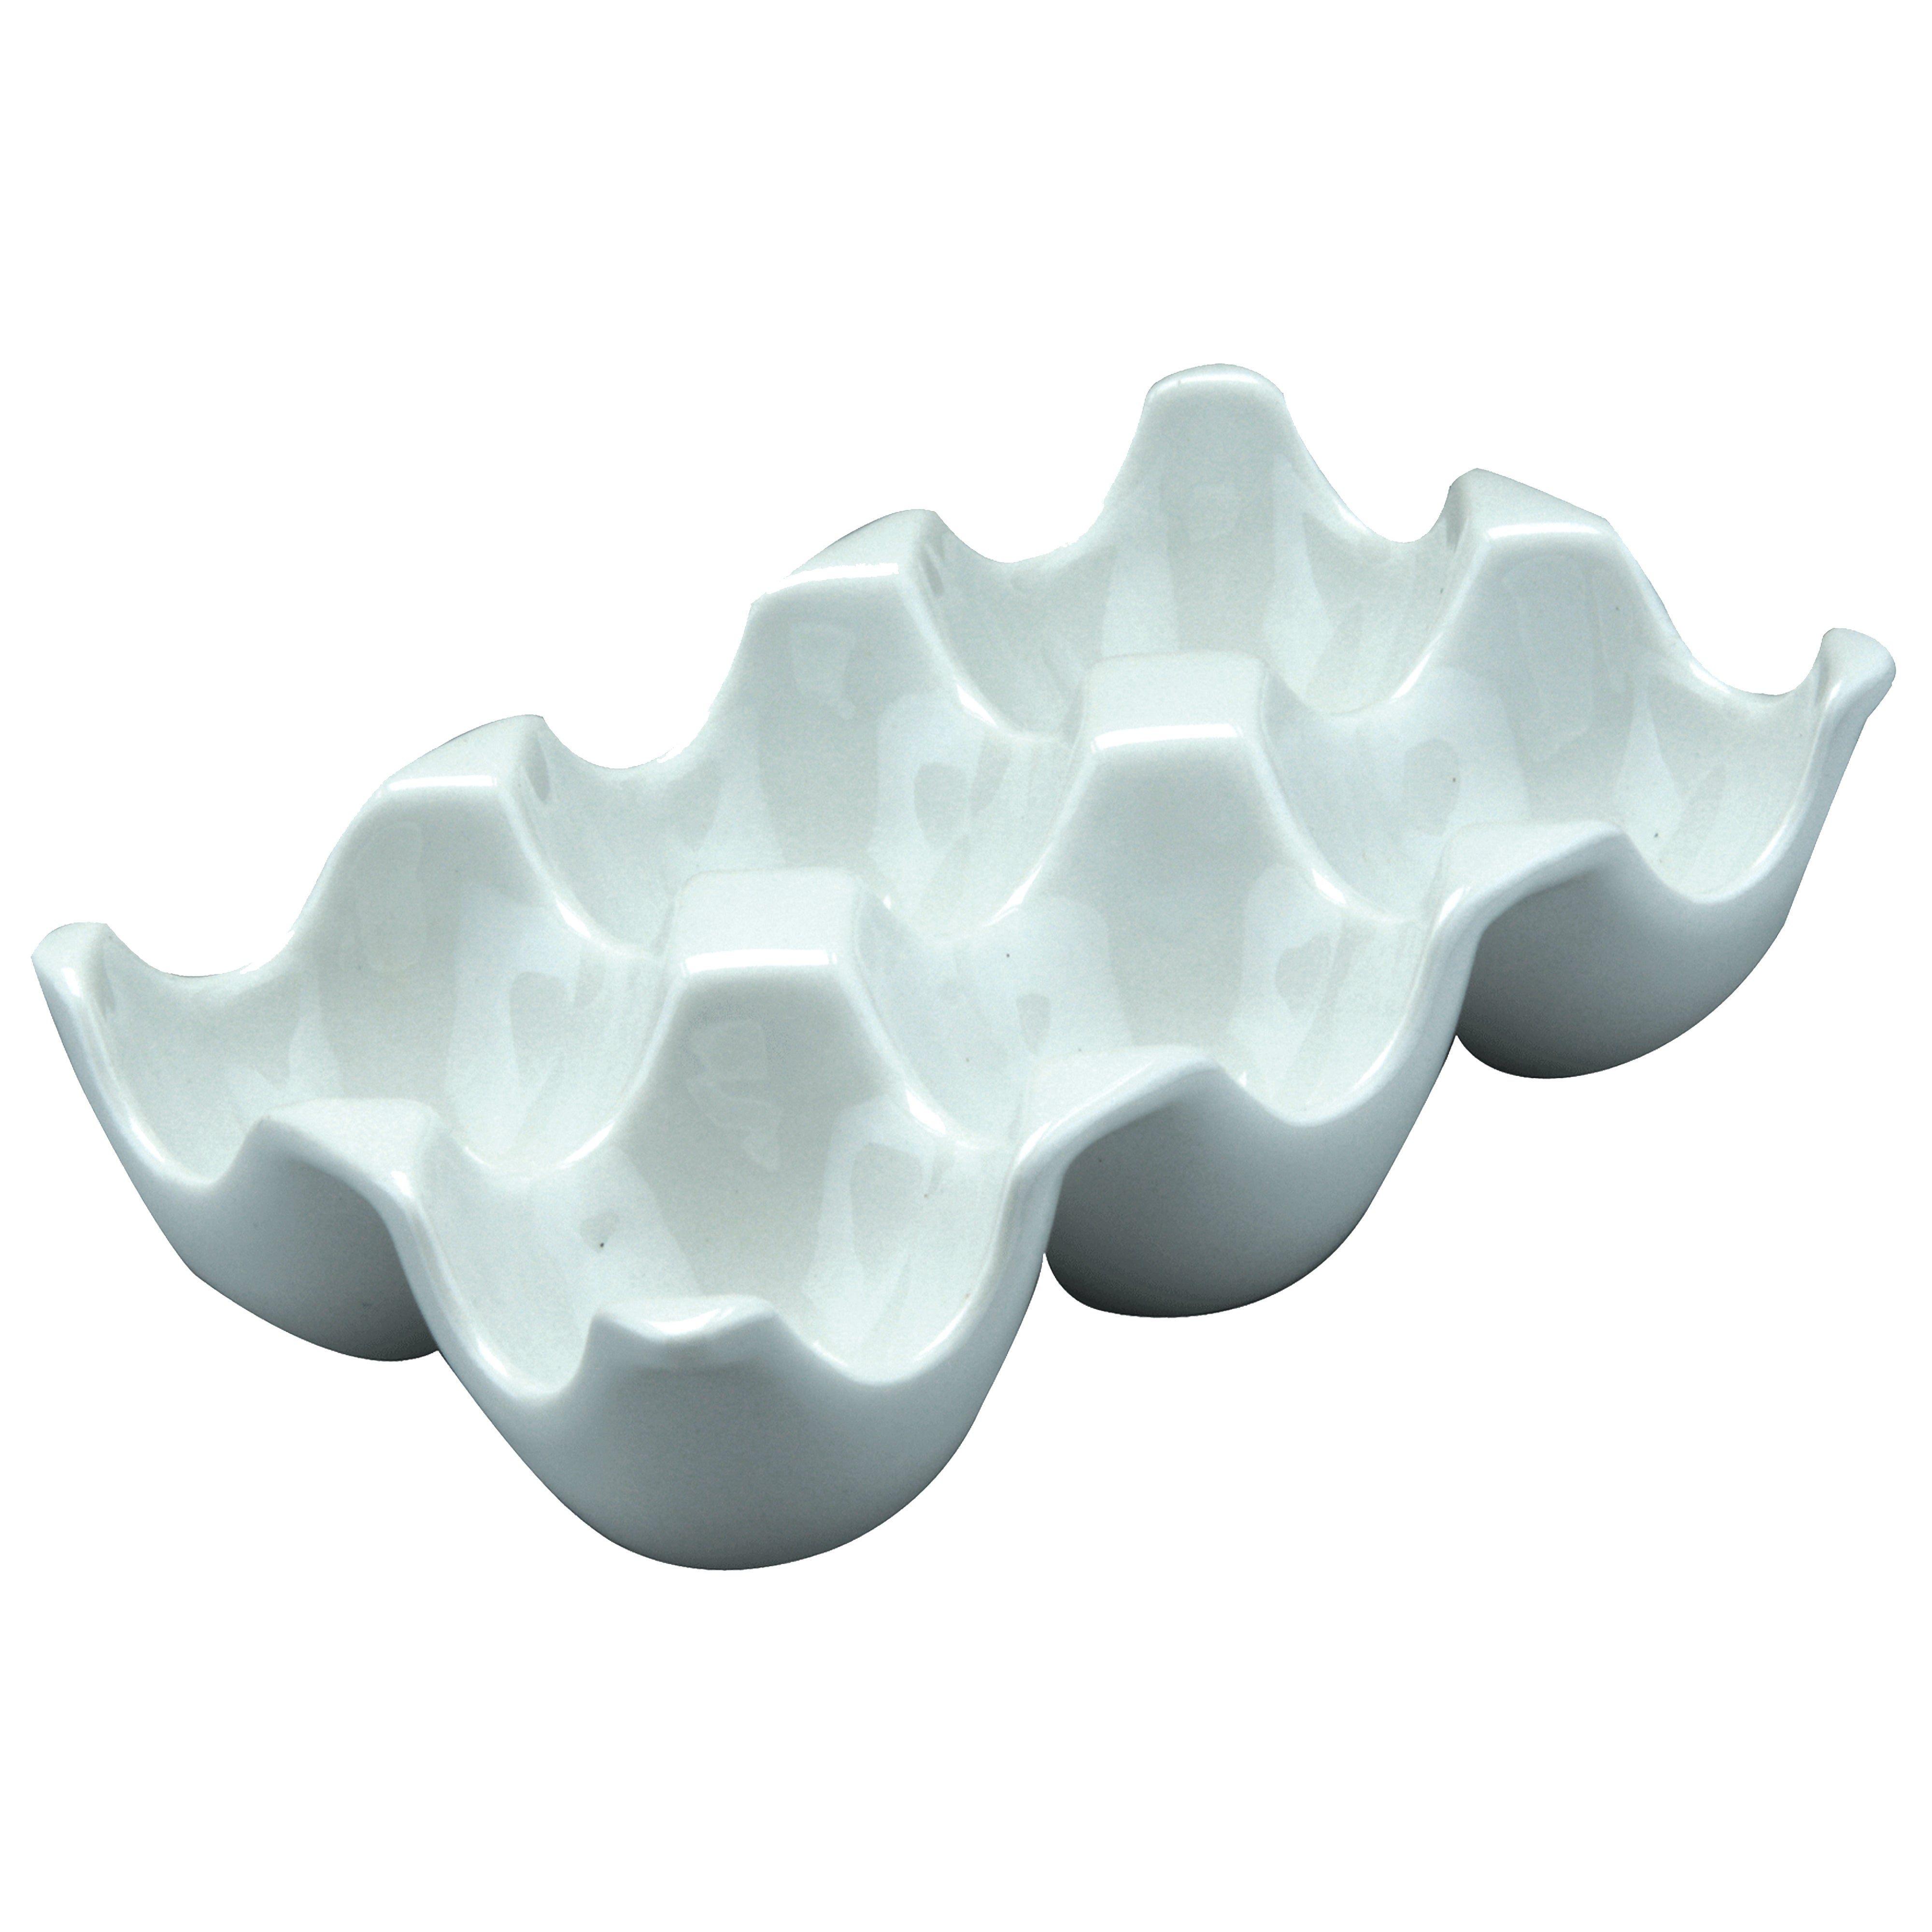 White Ceramic 6 Egg Holder